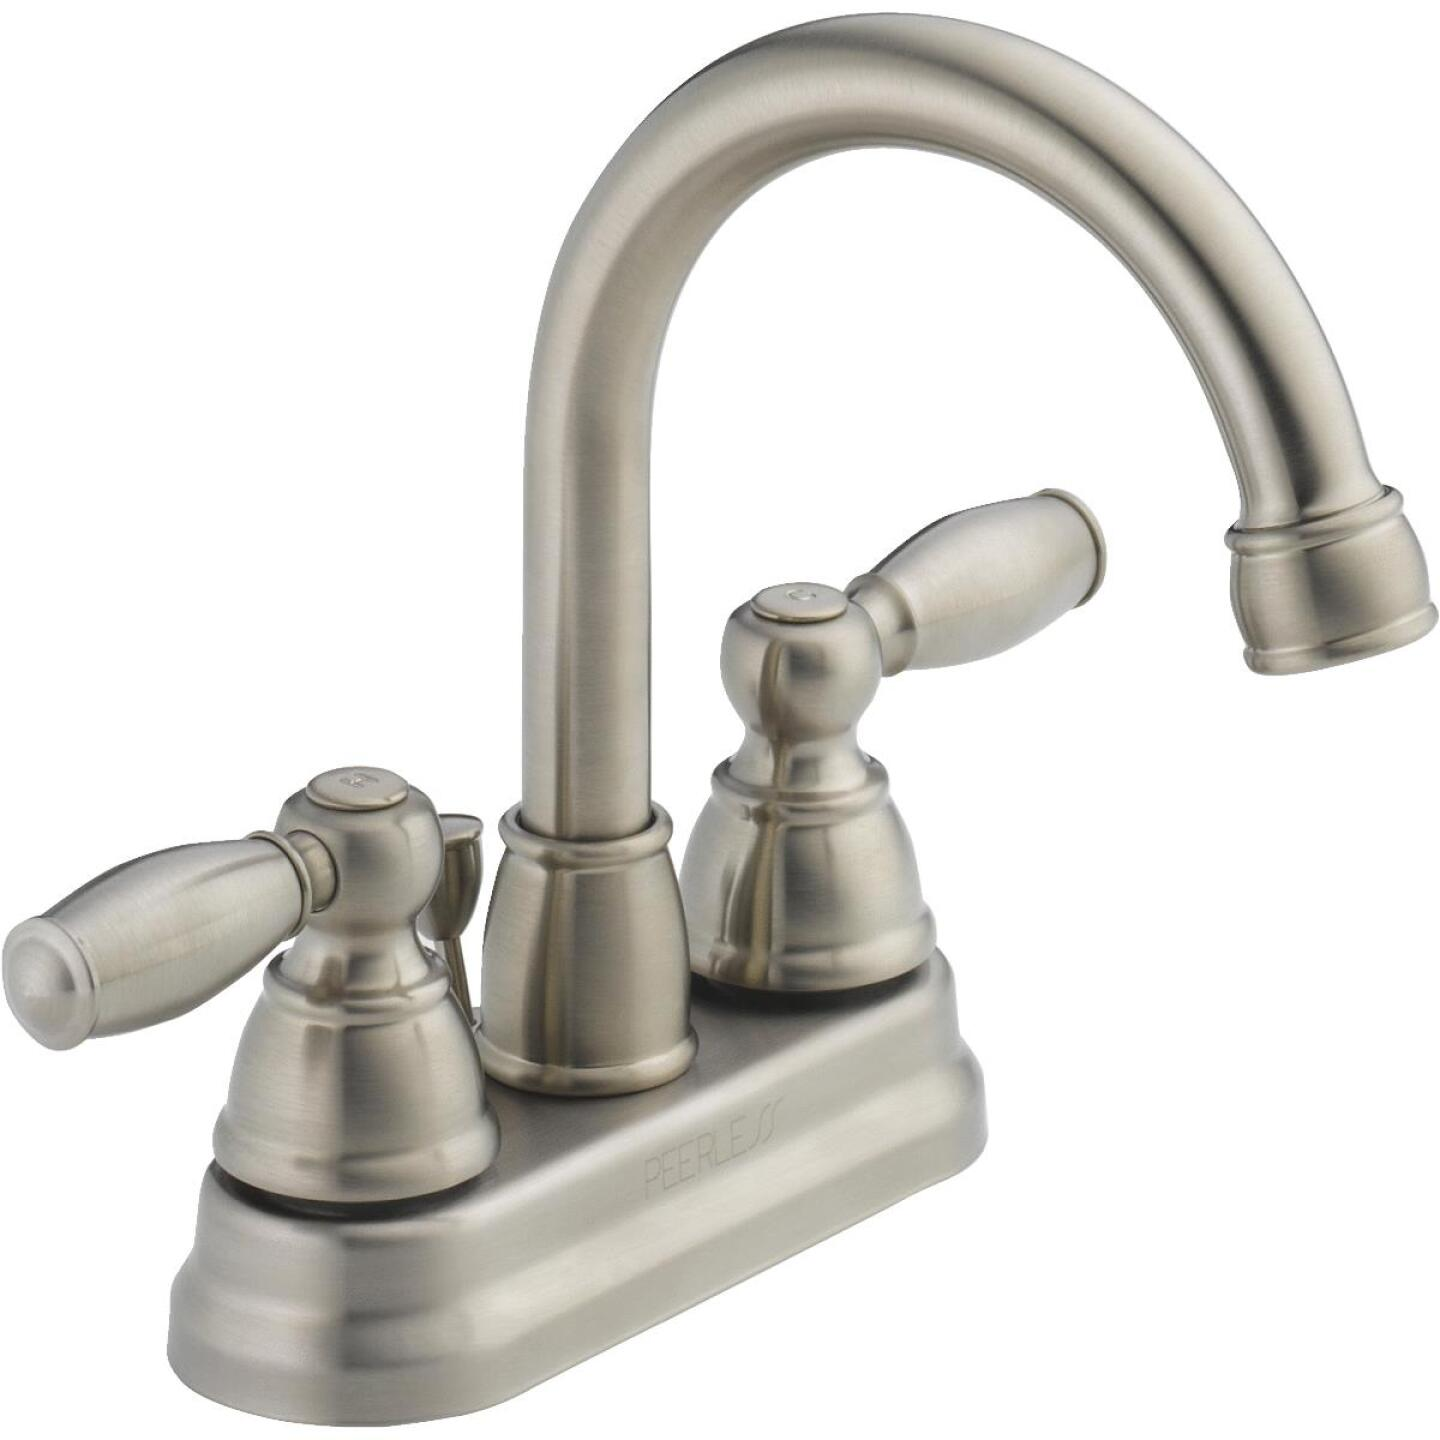 Peerless Brushed Nickel 2-Handle Lever 4 In. Centerset Hi-Arc Bathroom Faucet with Pop-Up Image 1